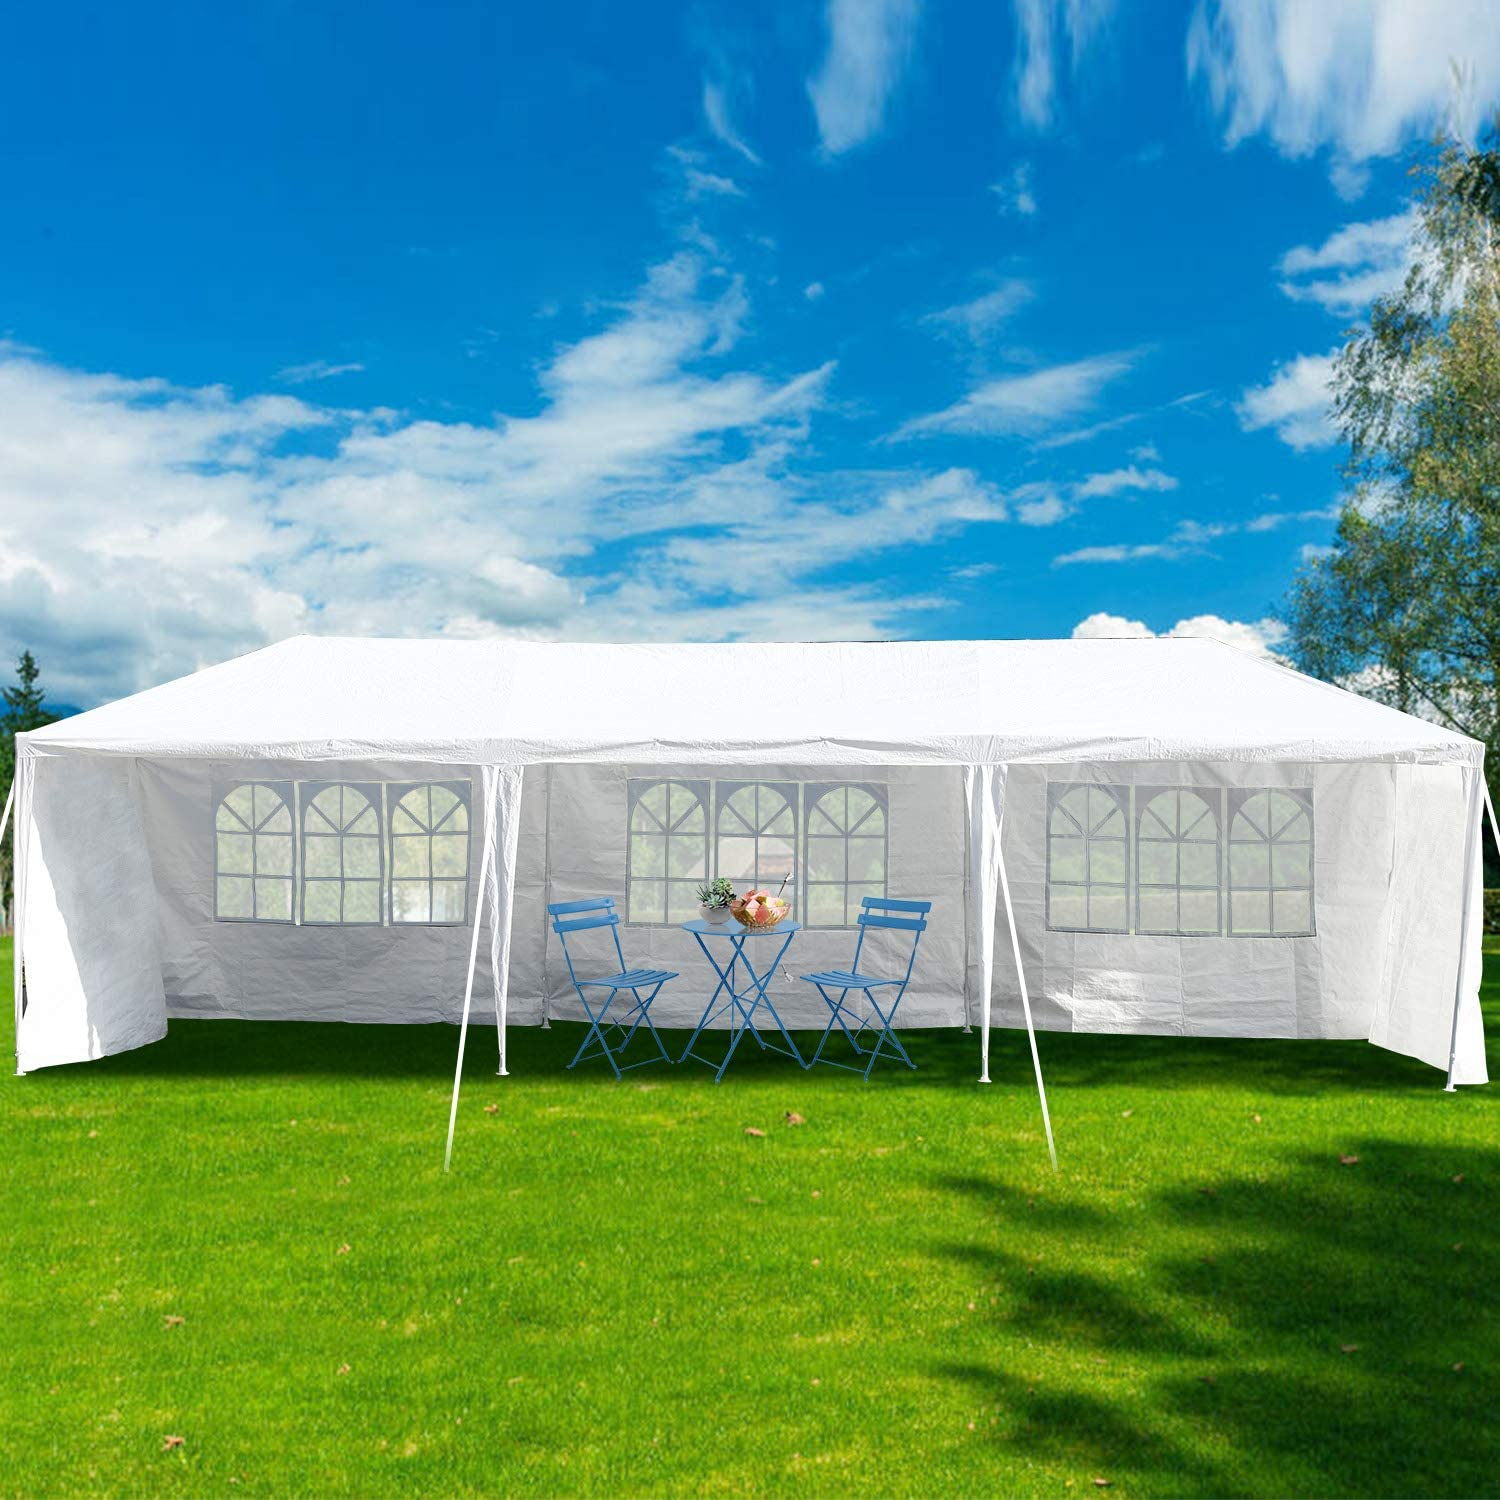 10'x30' Outdoor Party お買い得品 Wedding Tent WEB限定 Canop Heavy Duty Camping